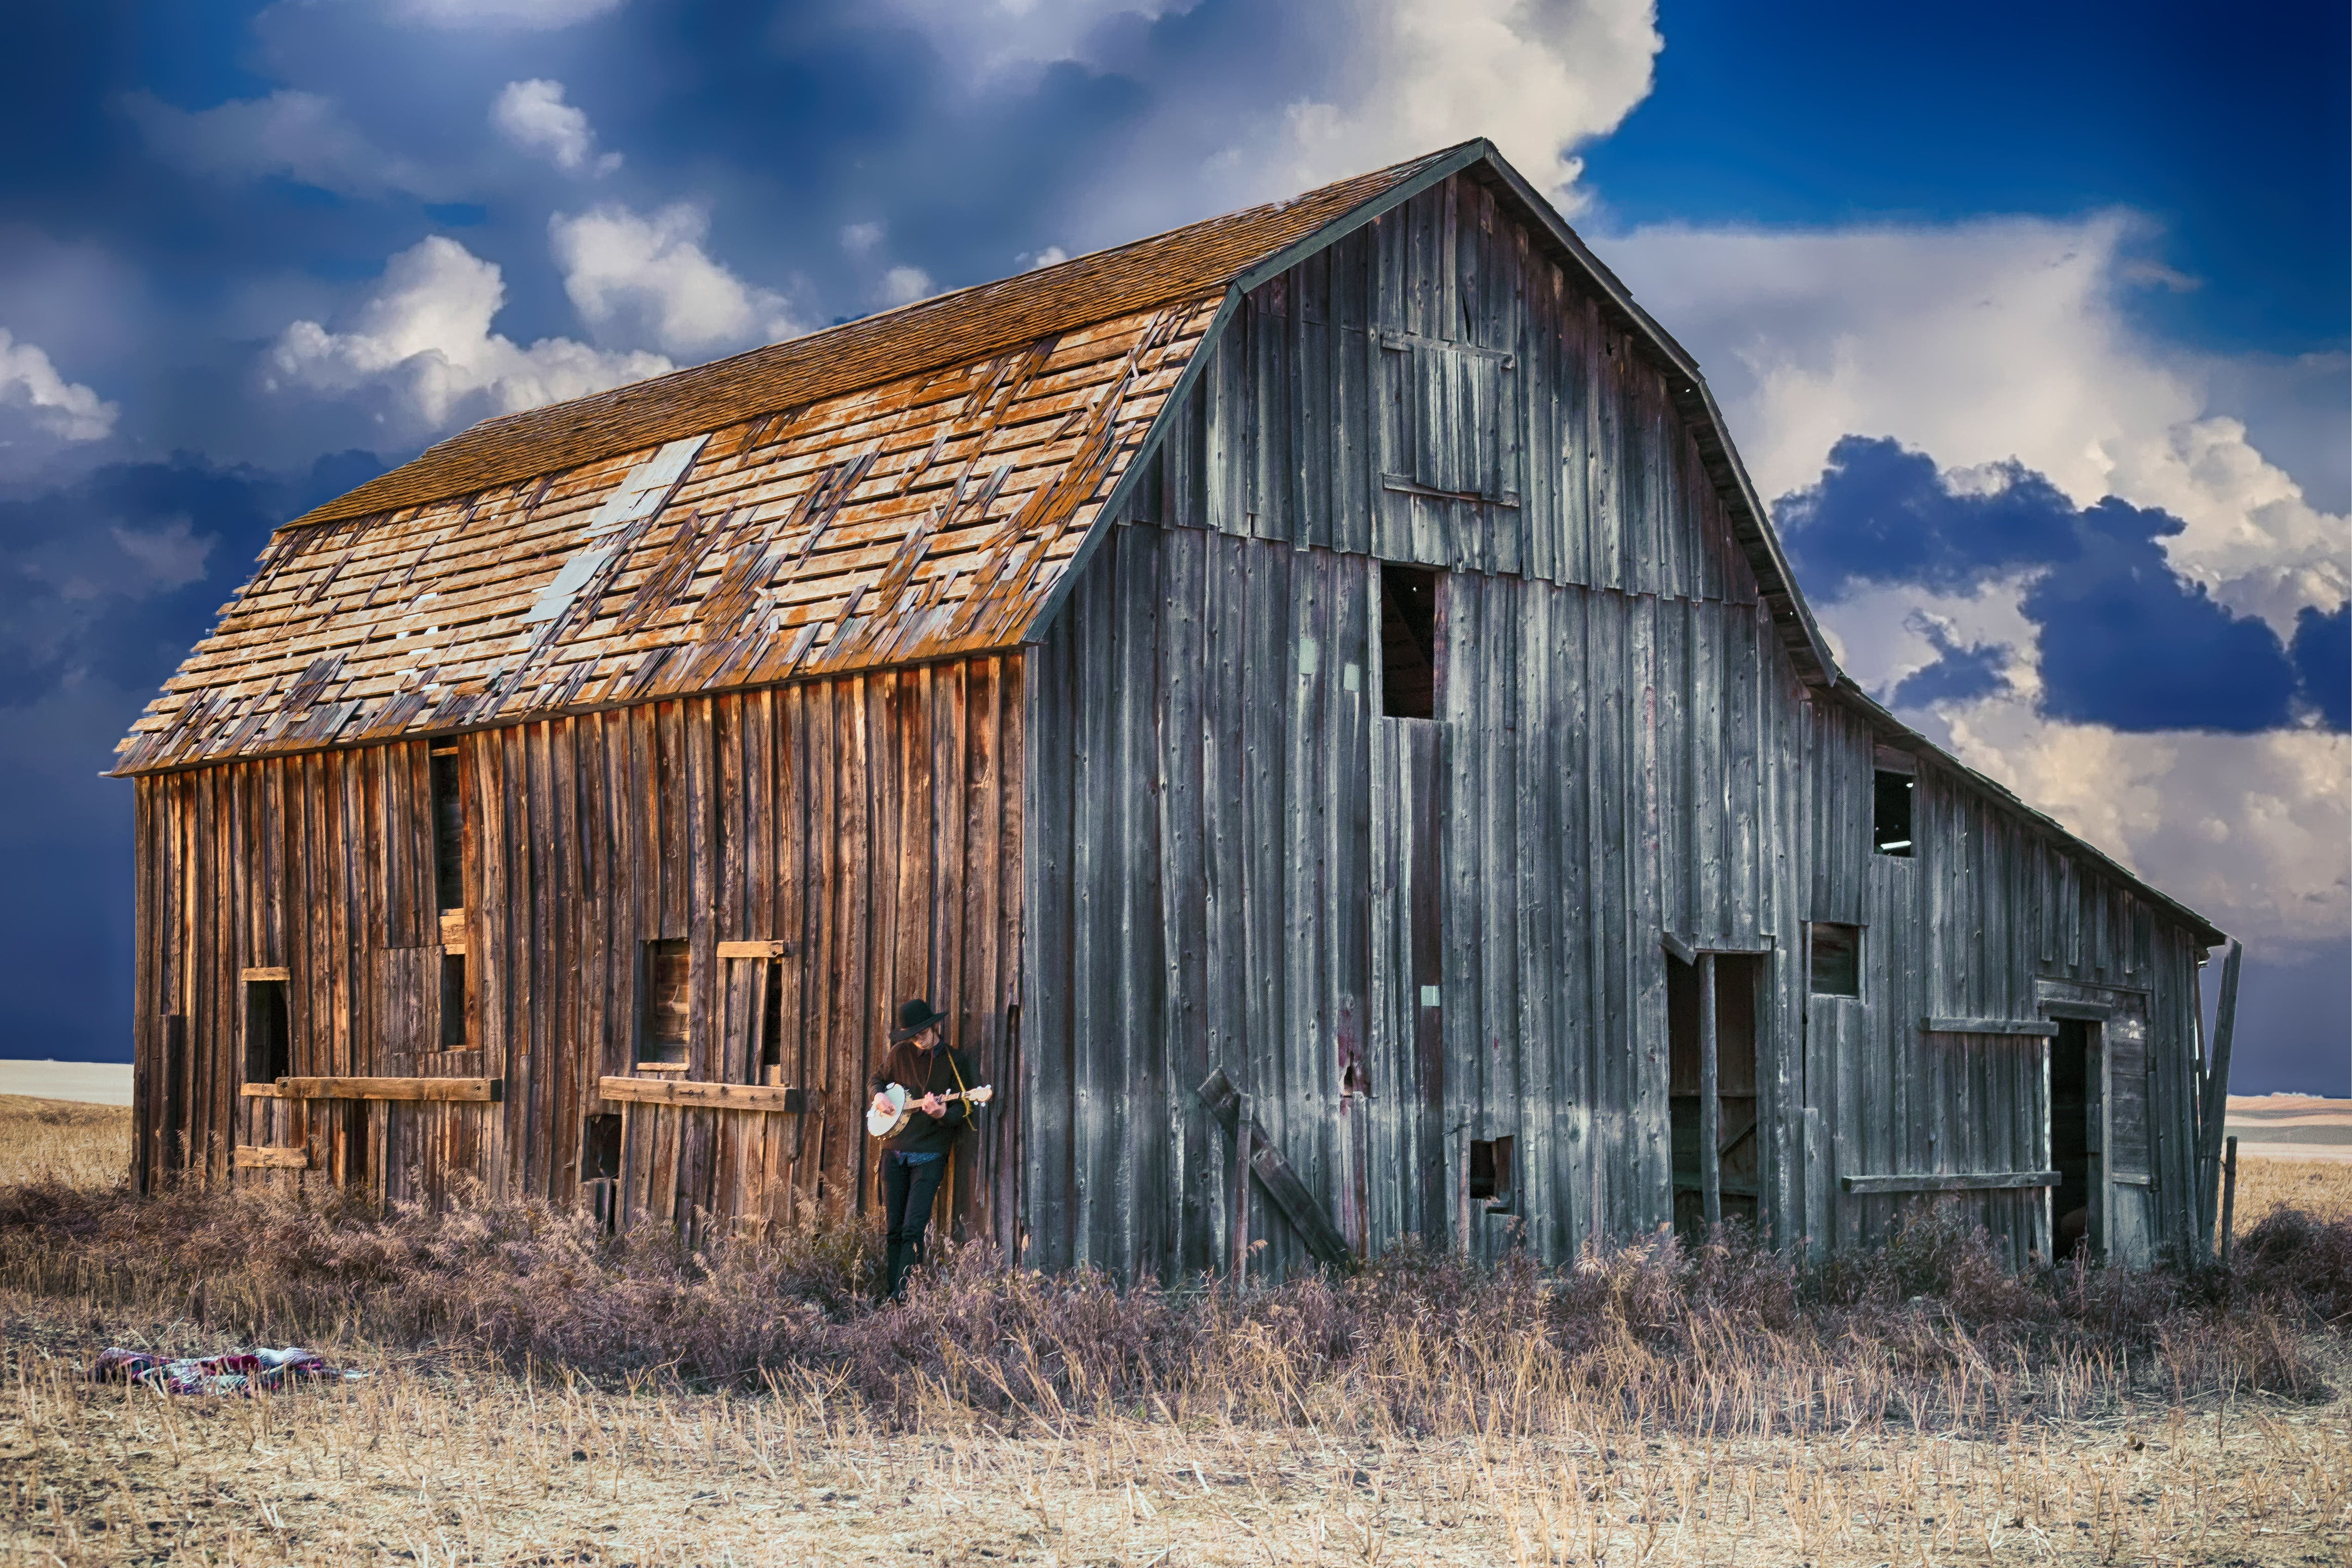 abandoned, cabin, clouds